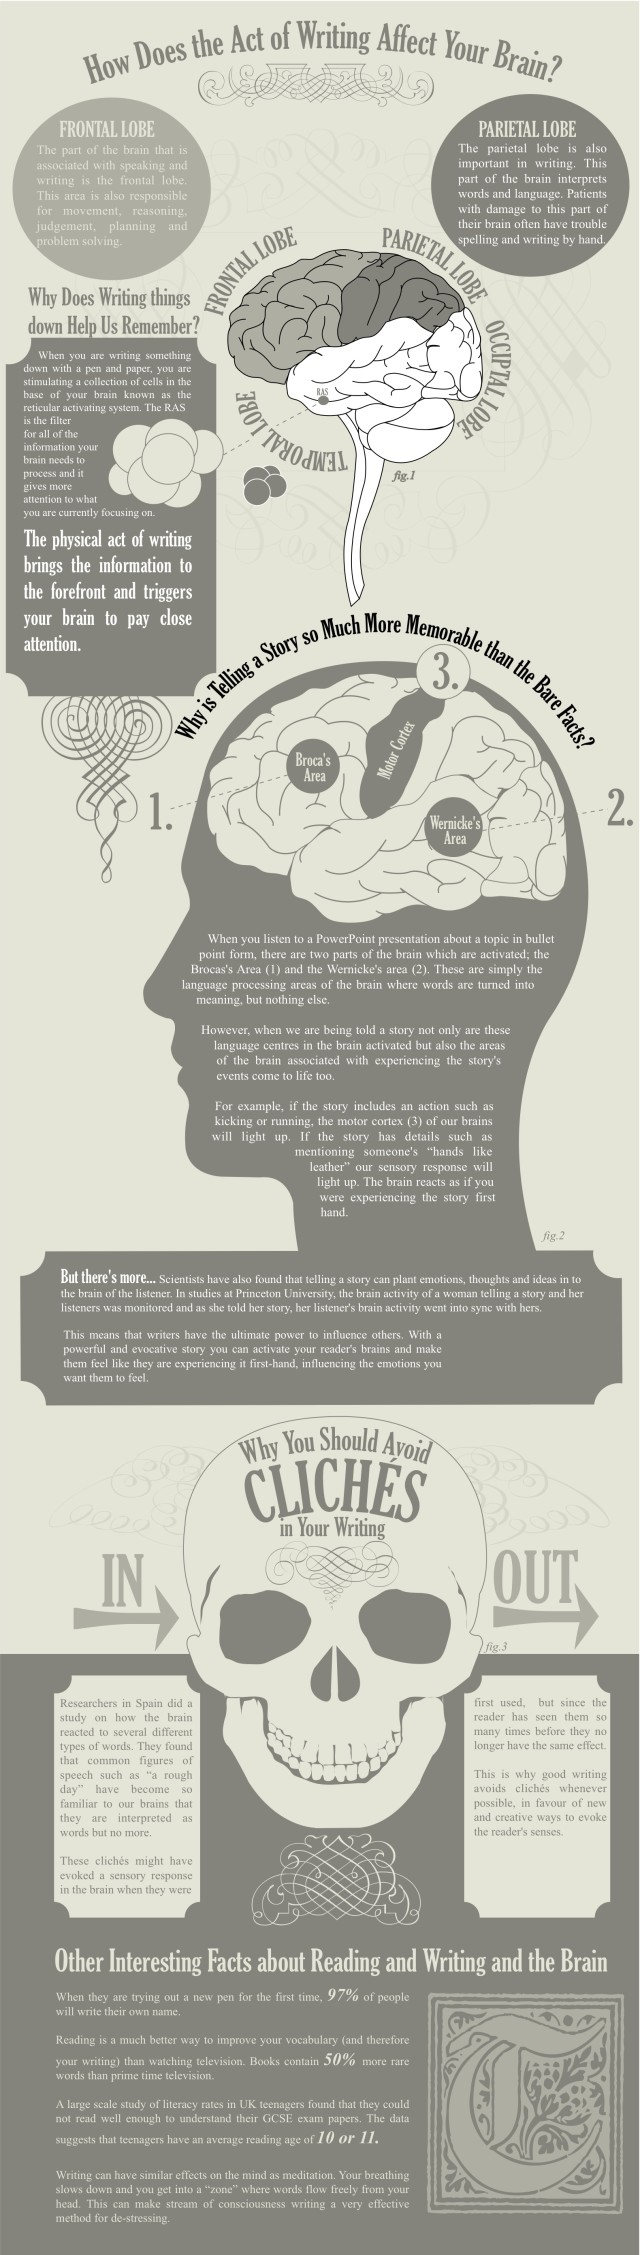 amazing-facts-about-writing-and-the-brain-640x2255.jpg